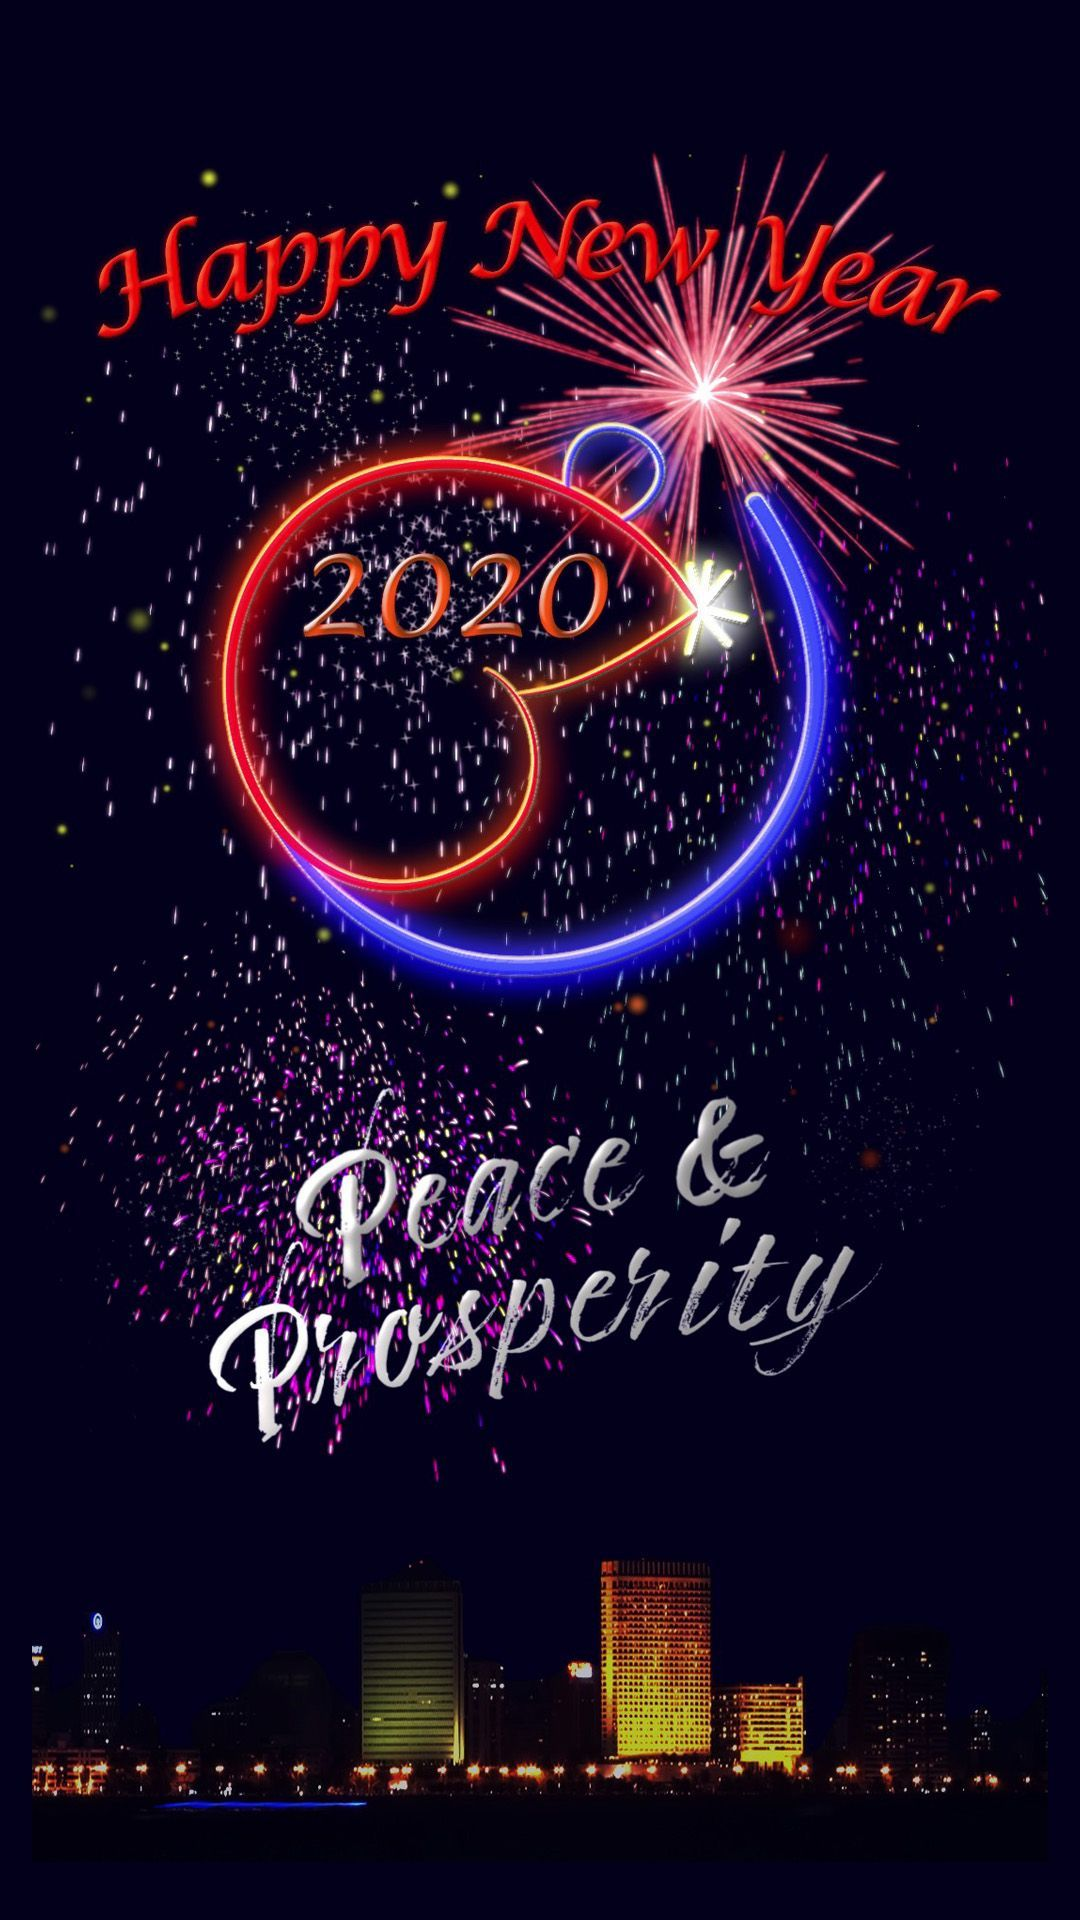 Happy Lunar New Year 2020 Videos & Happy Lunar New Year 2020 #happynewyear2020quotes